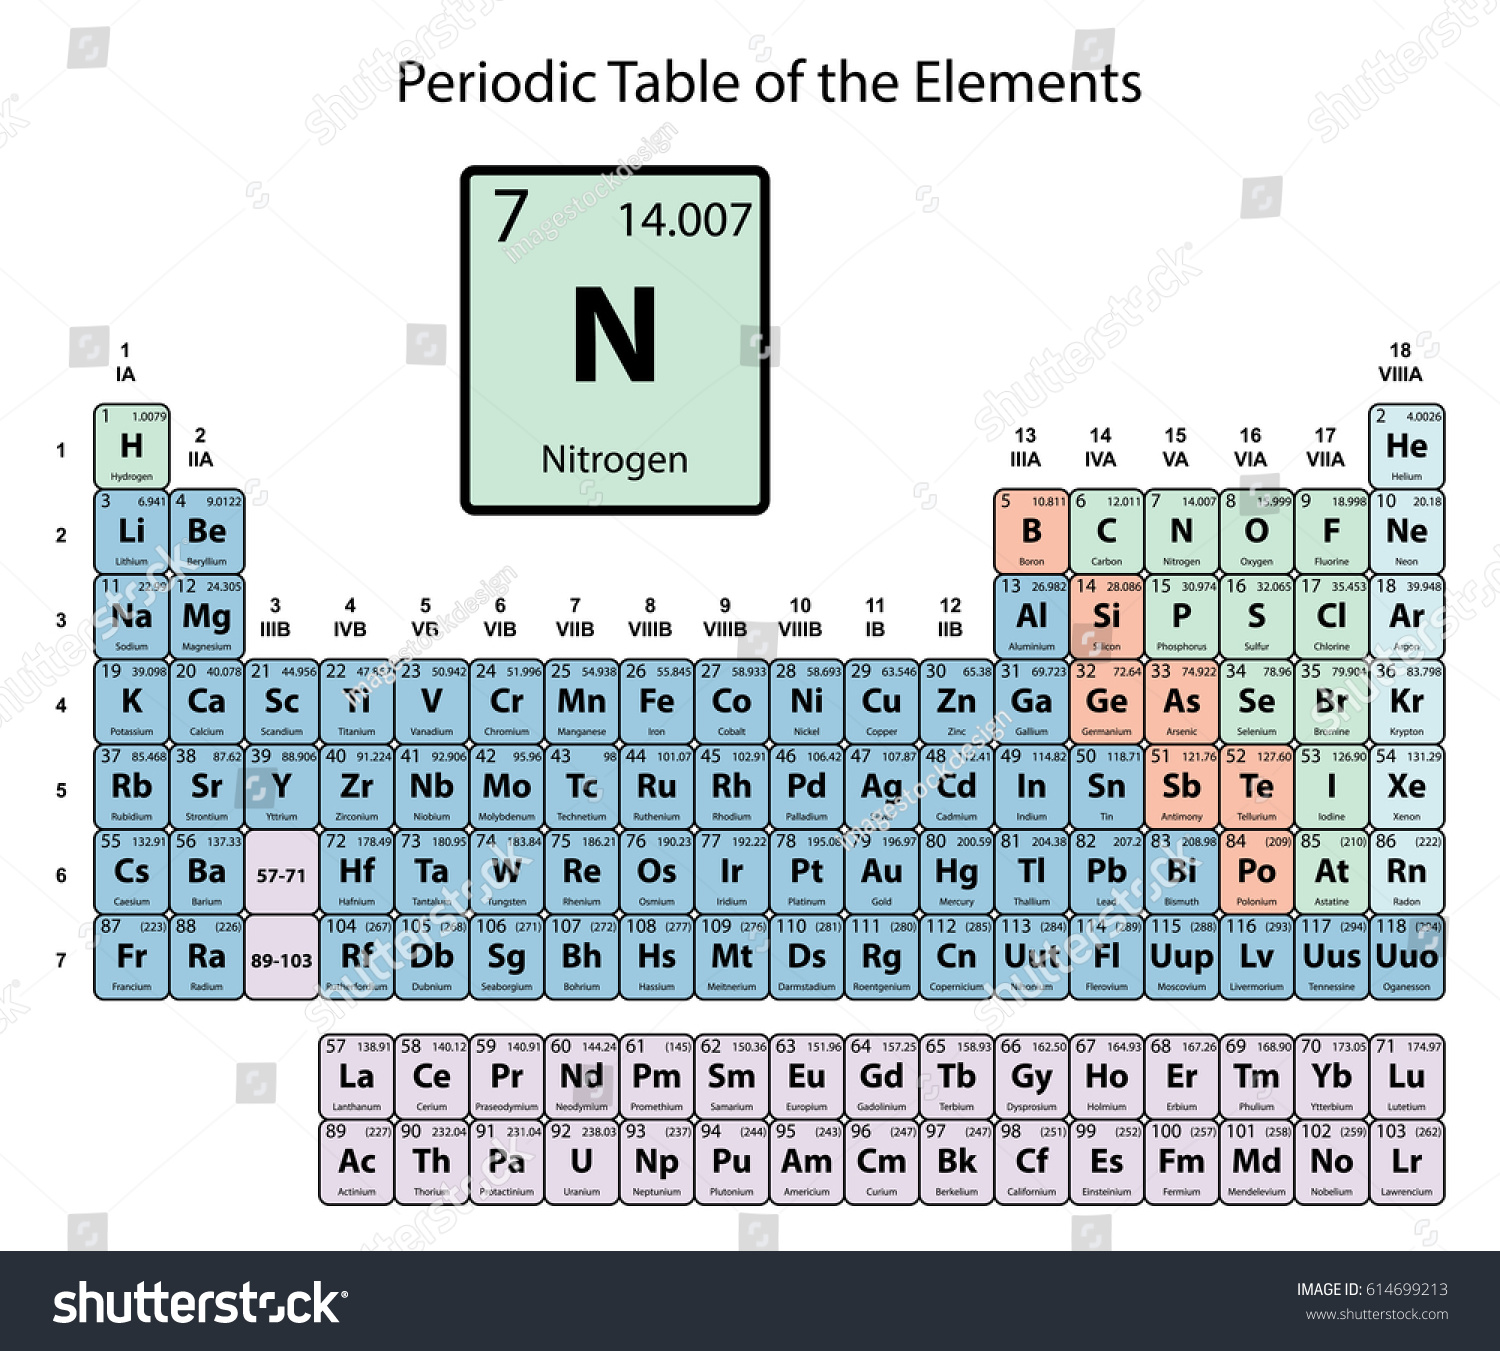 Periodic table jefferson lab image collections periodic table images n2 periodic table images periodic table images n2 periodic table choice image periodic table images periodic gamestrikefo Image collections